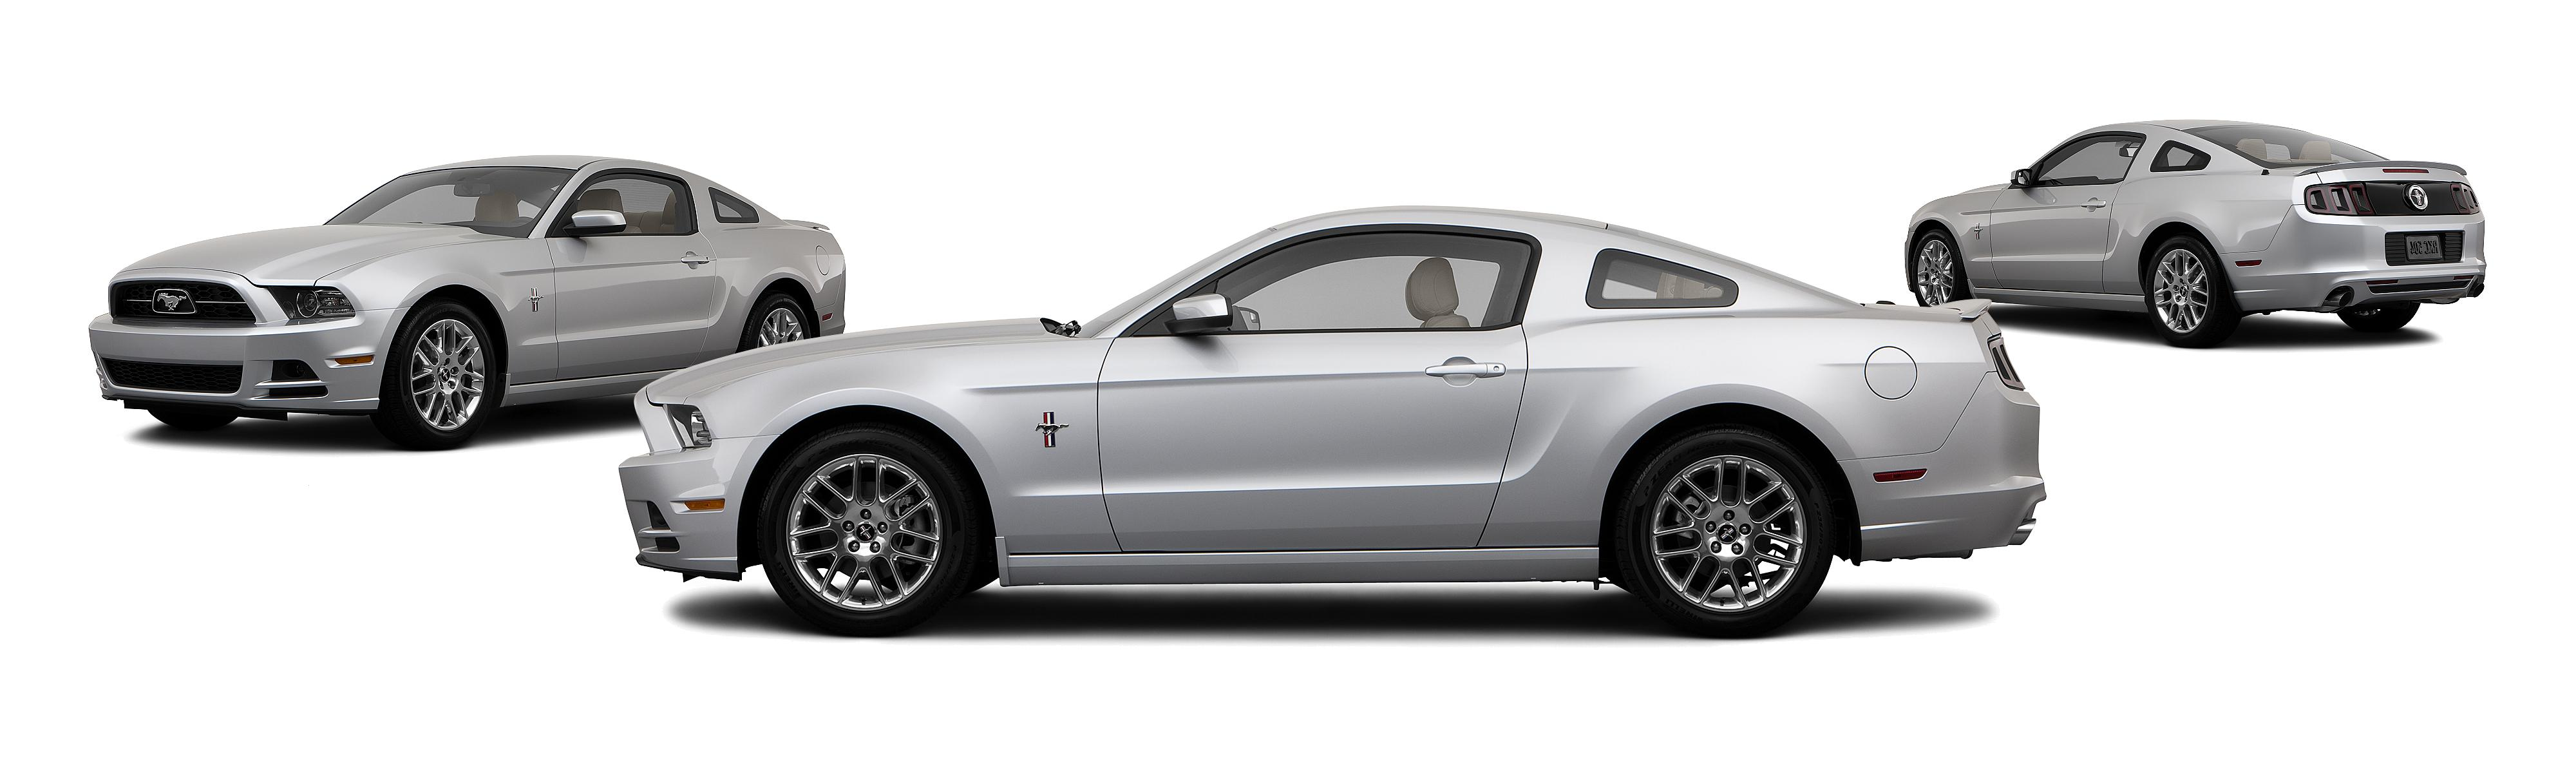 2013 Ford Mustang V6 Premium 2dr Fastback Research GrooveCar